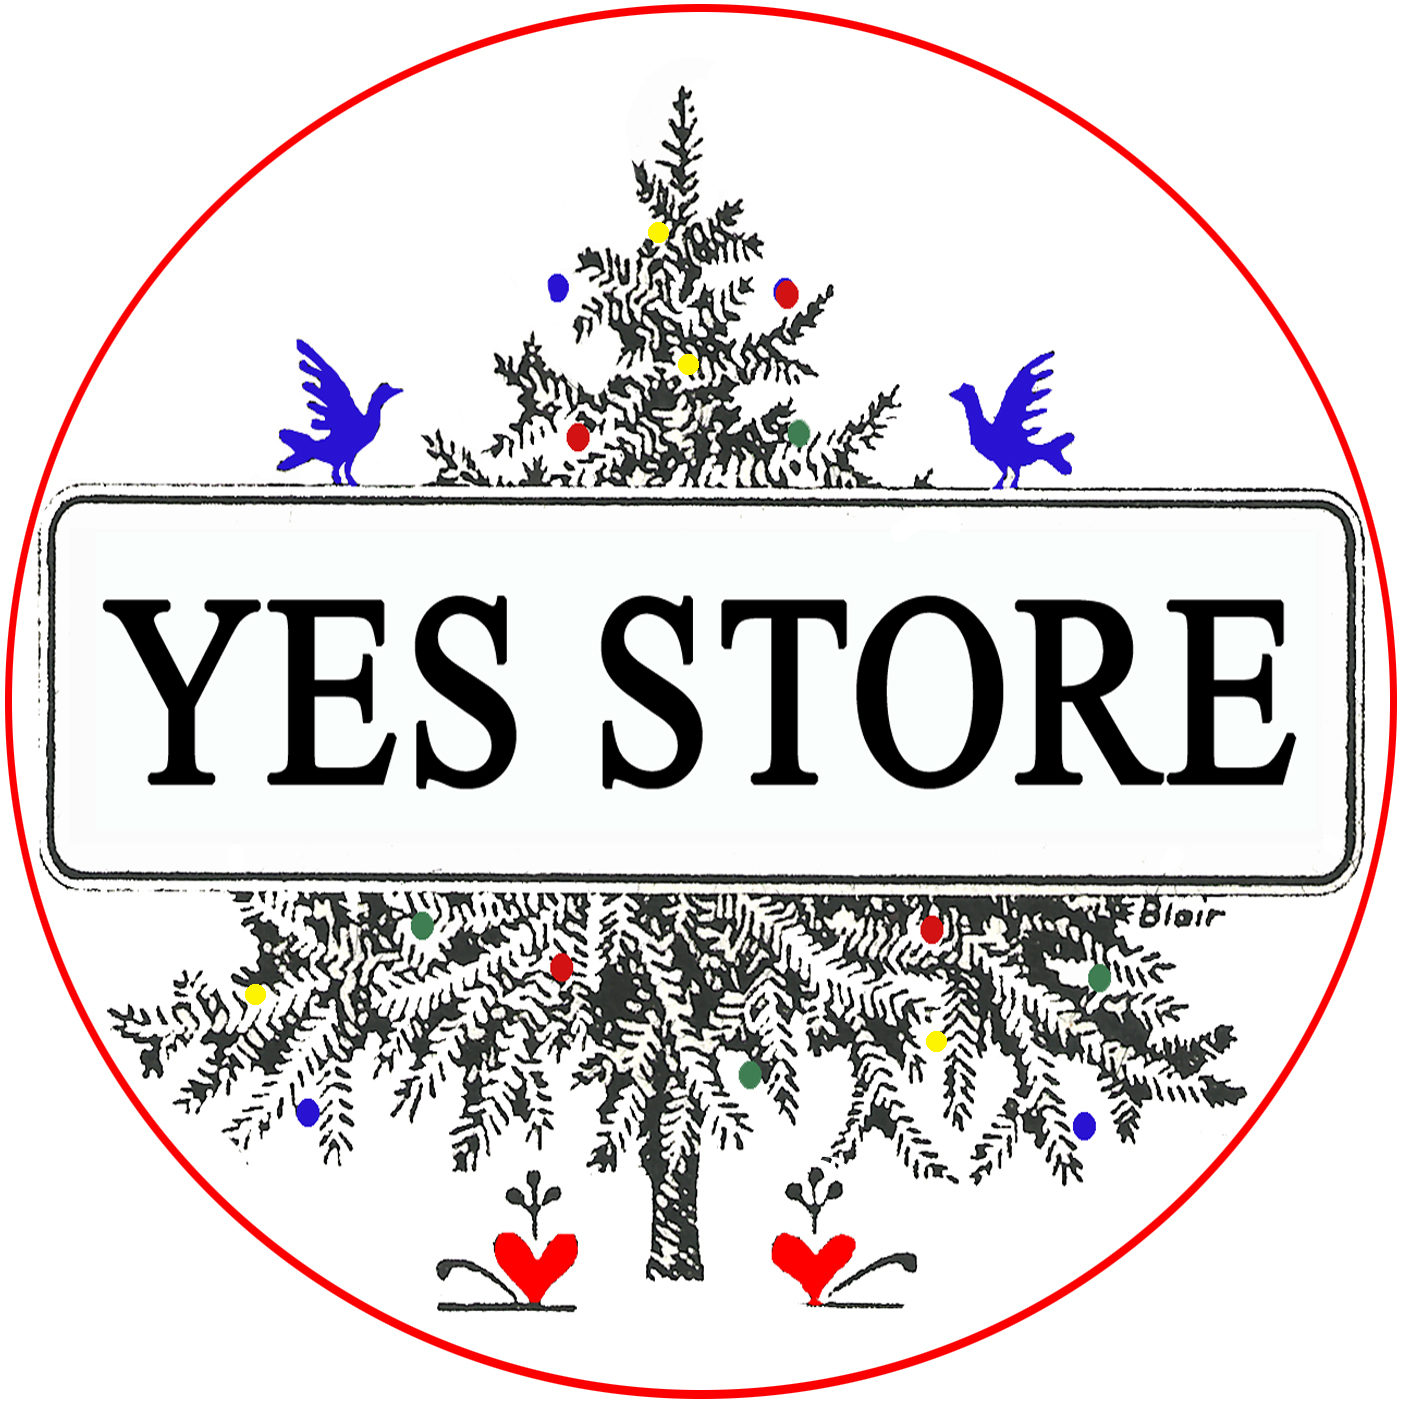 The Yes Store